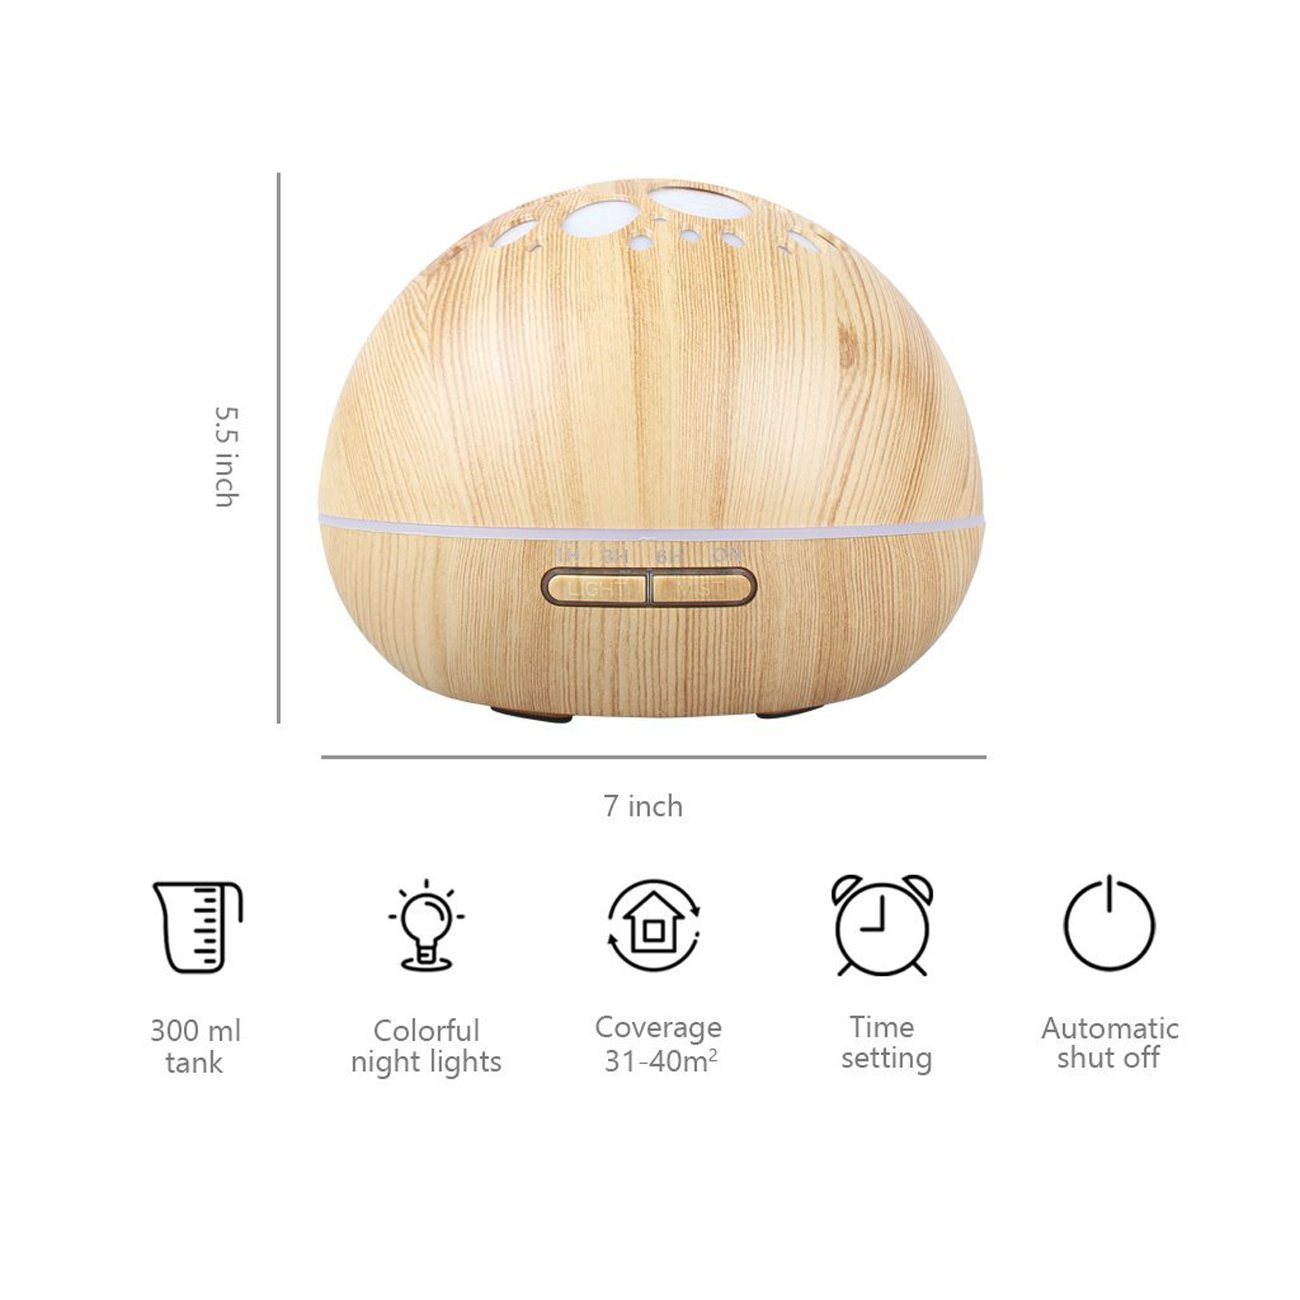 Aroma Essential Oil Diffuser Ultrasonic Cool Mist Humidifier with Adjustable Mist Mode 7 Color LED Lights and Waterless Auto Power-off for Office Home Study Yoga Spa 300ml (Light Wood) by RSL (Image #3)